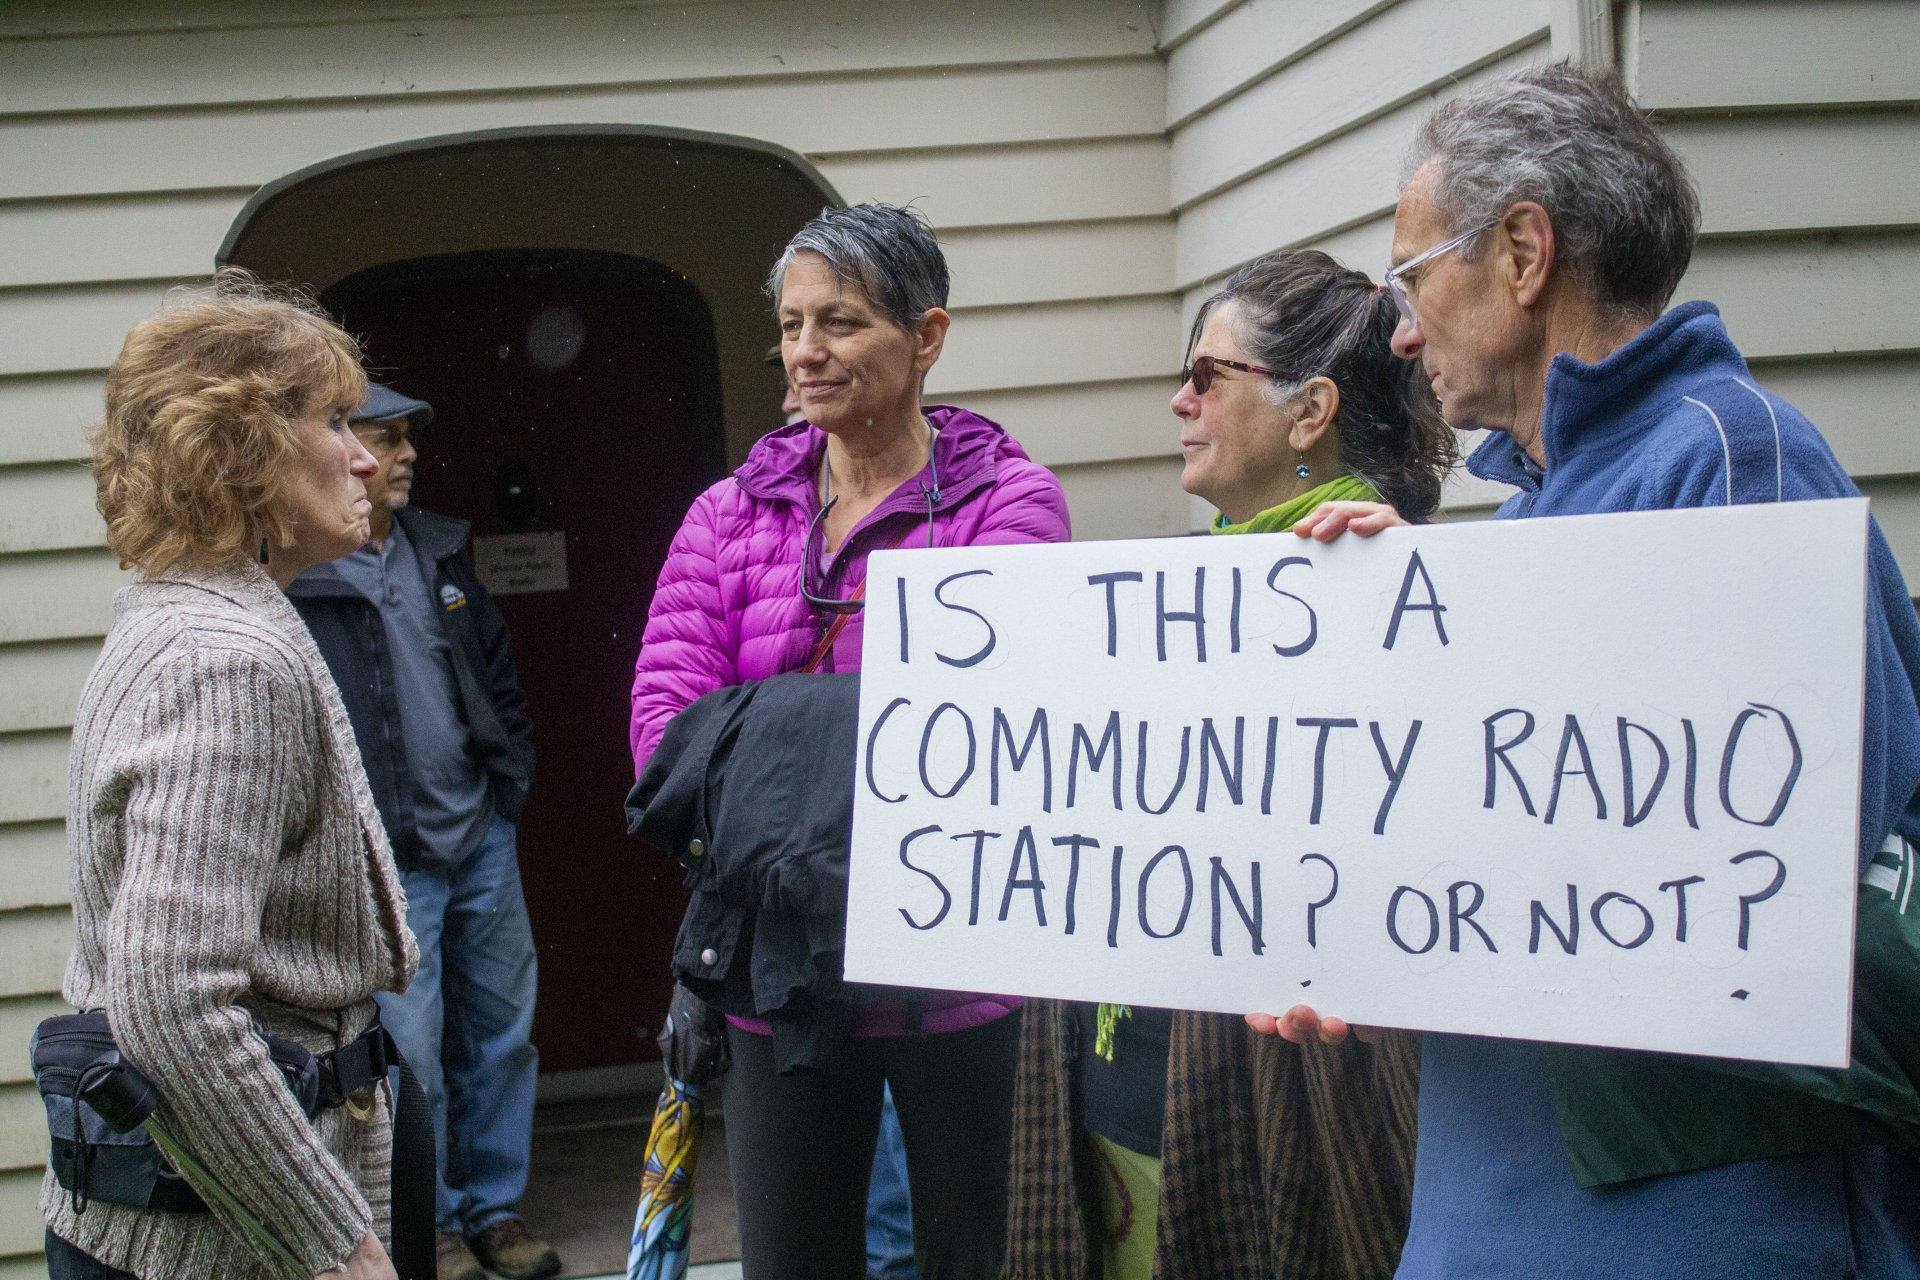 Now former volunteers and station supporters meet outside of Feuerwerker House after hearing about the elimination of jobs and volunteer positions at KHSU on April 11. | Photo by Thomas Lal